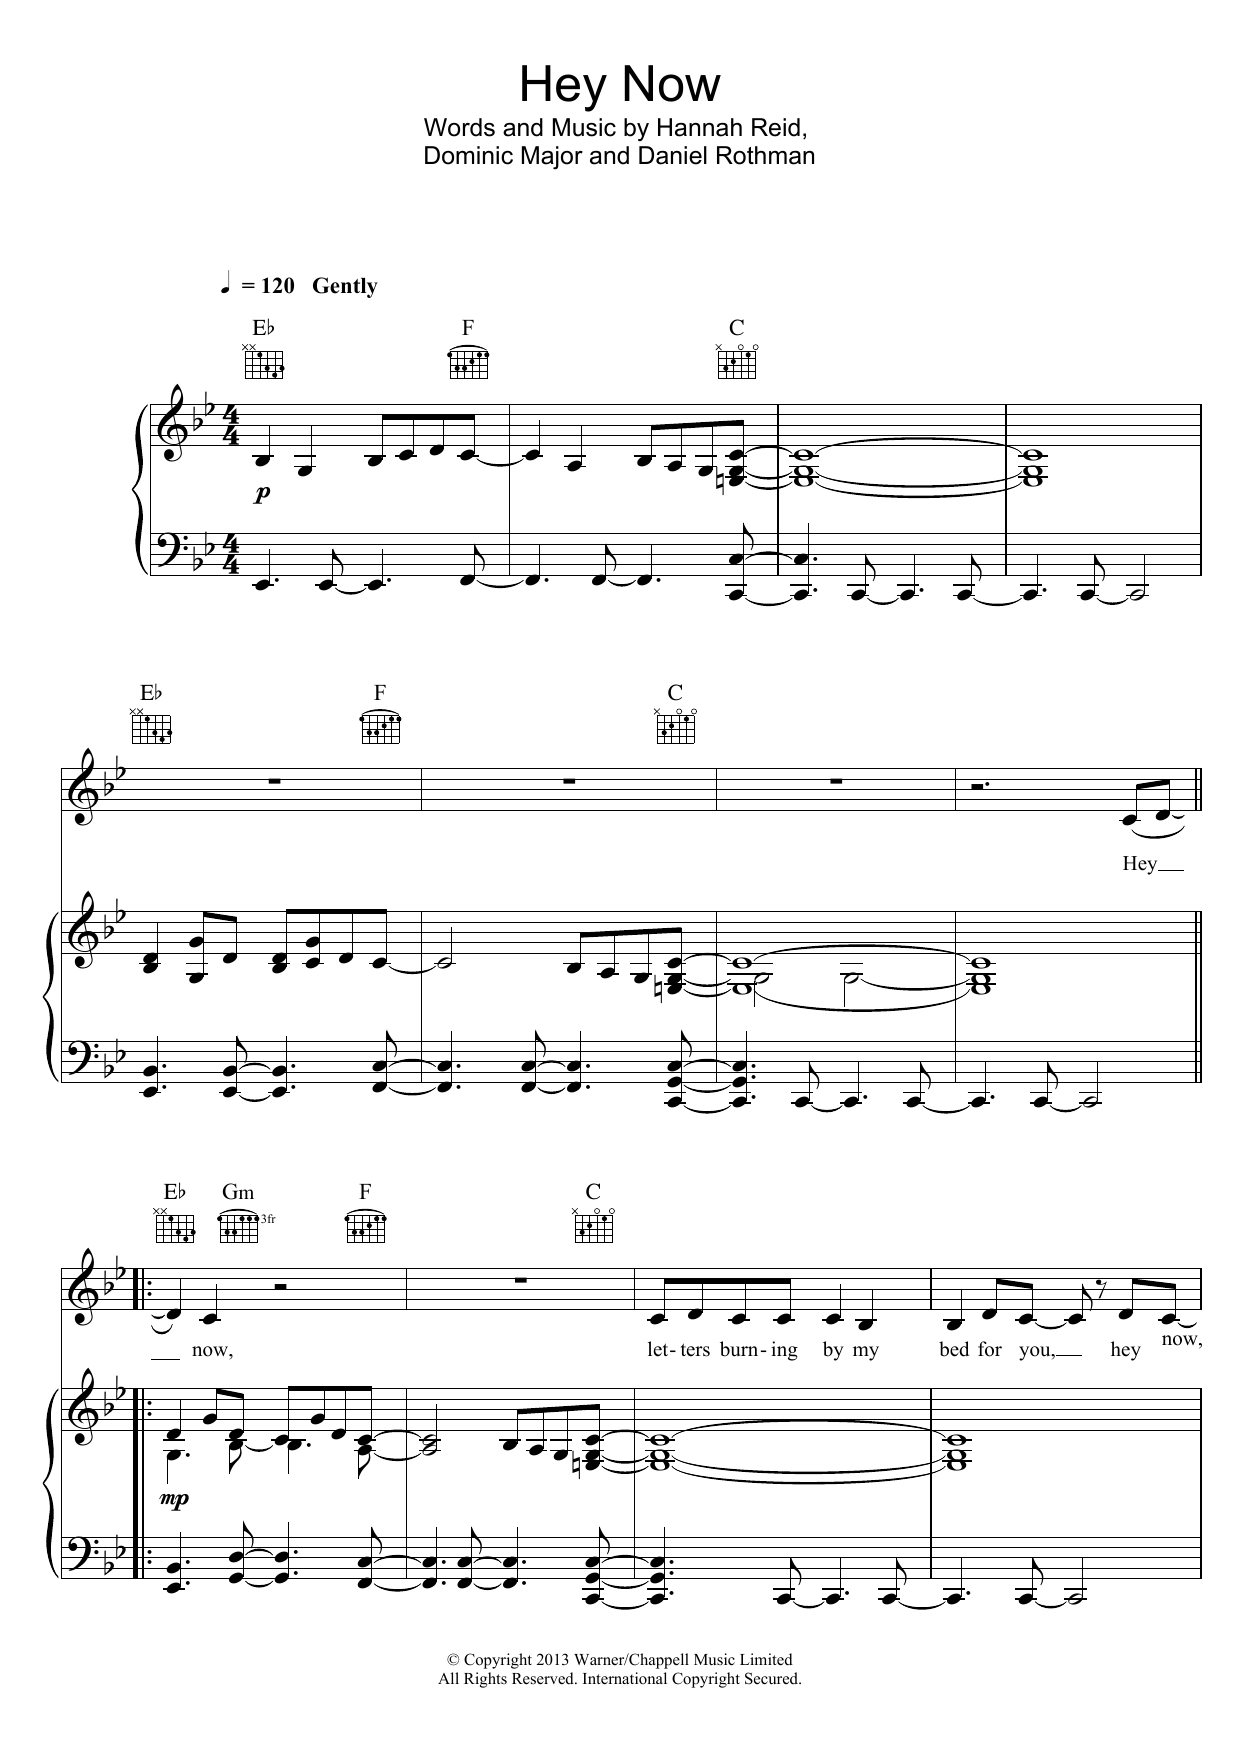 Hey Now Sheet Music